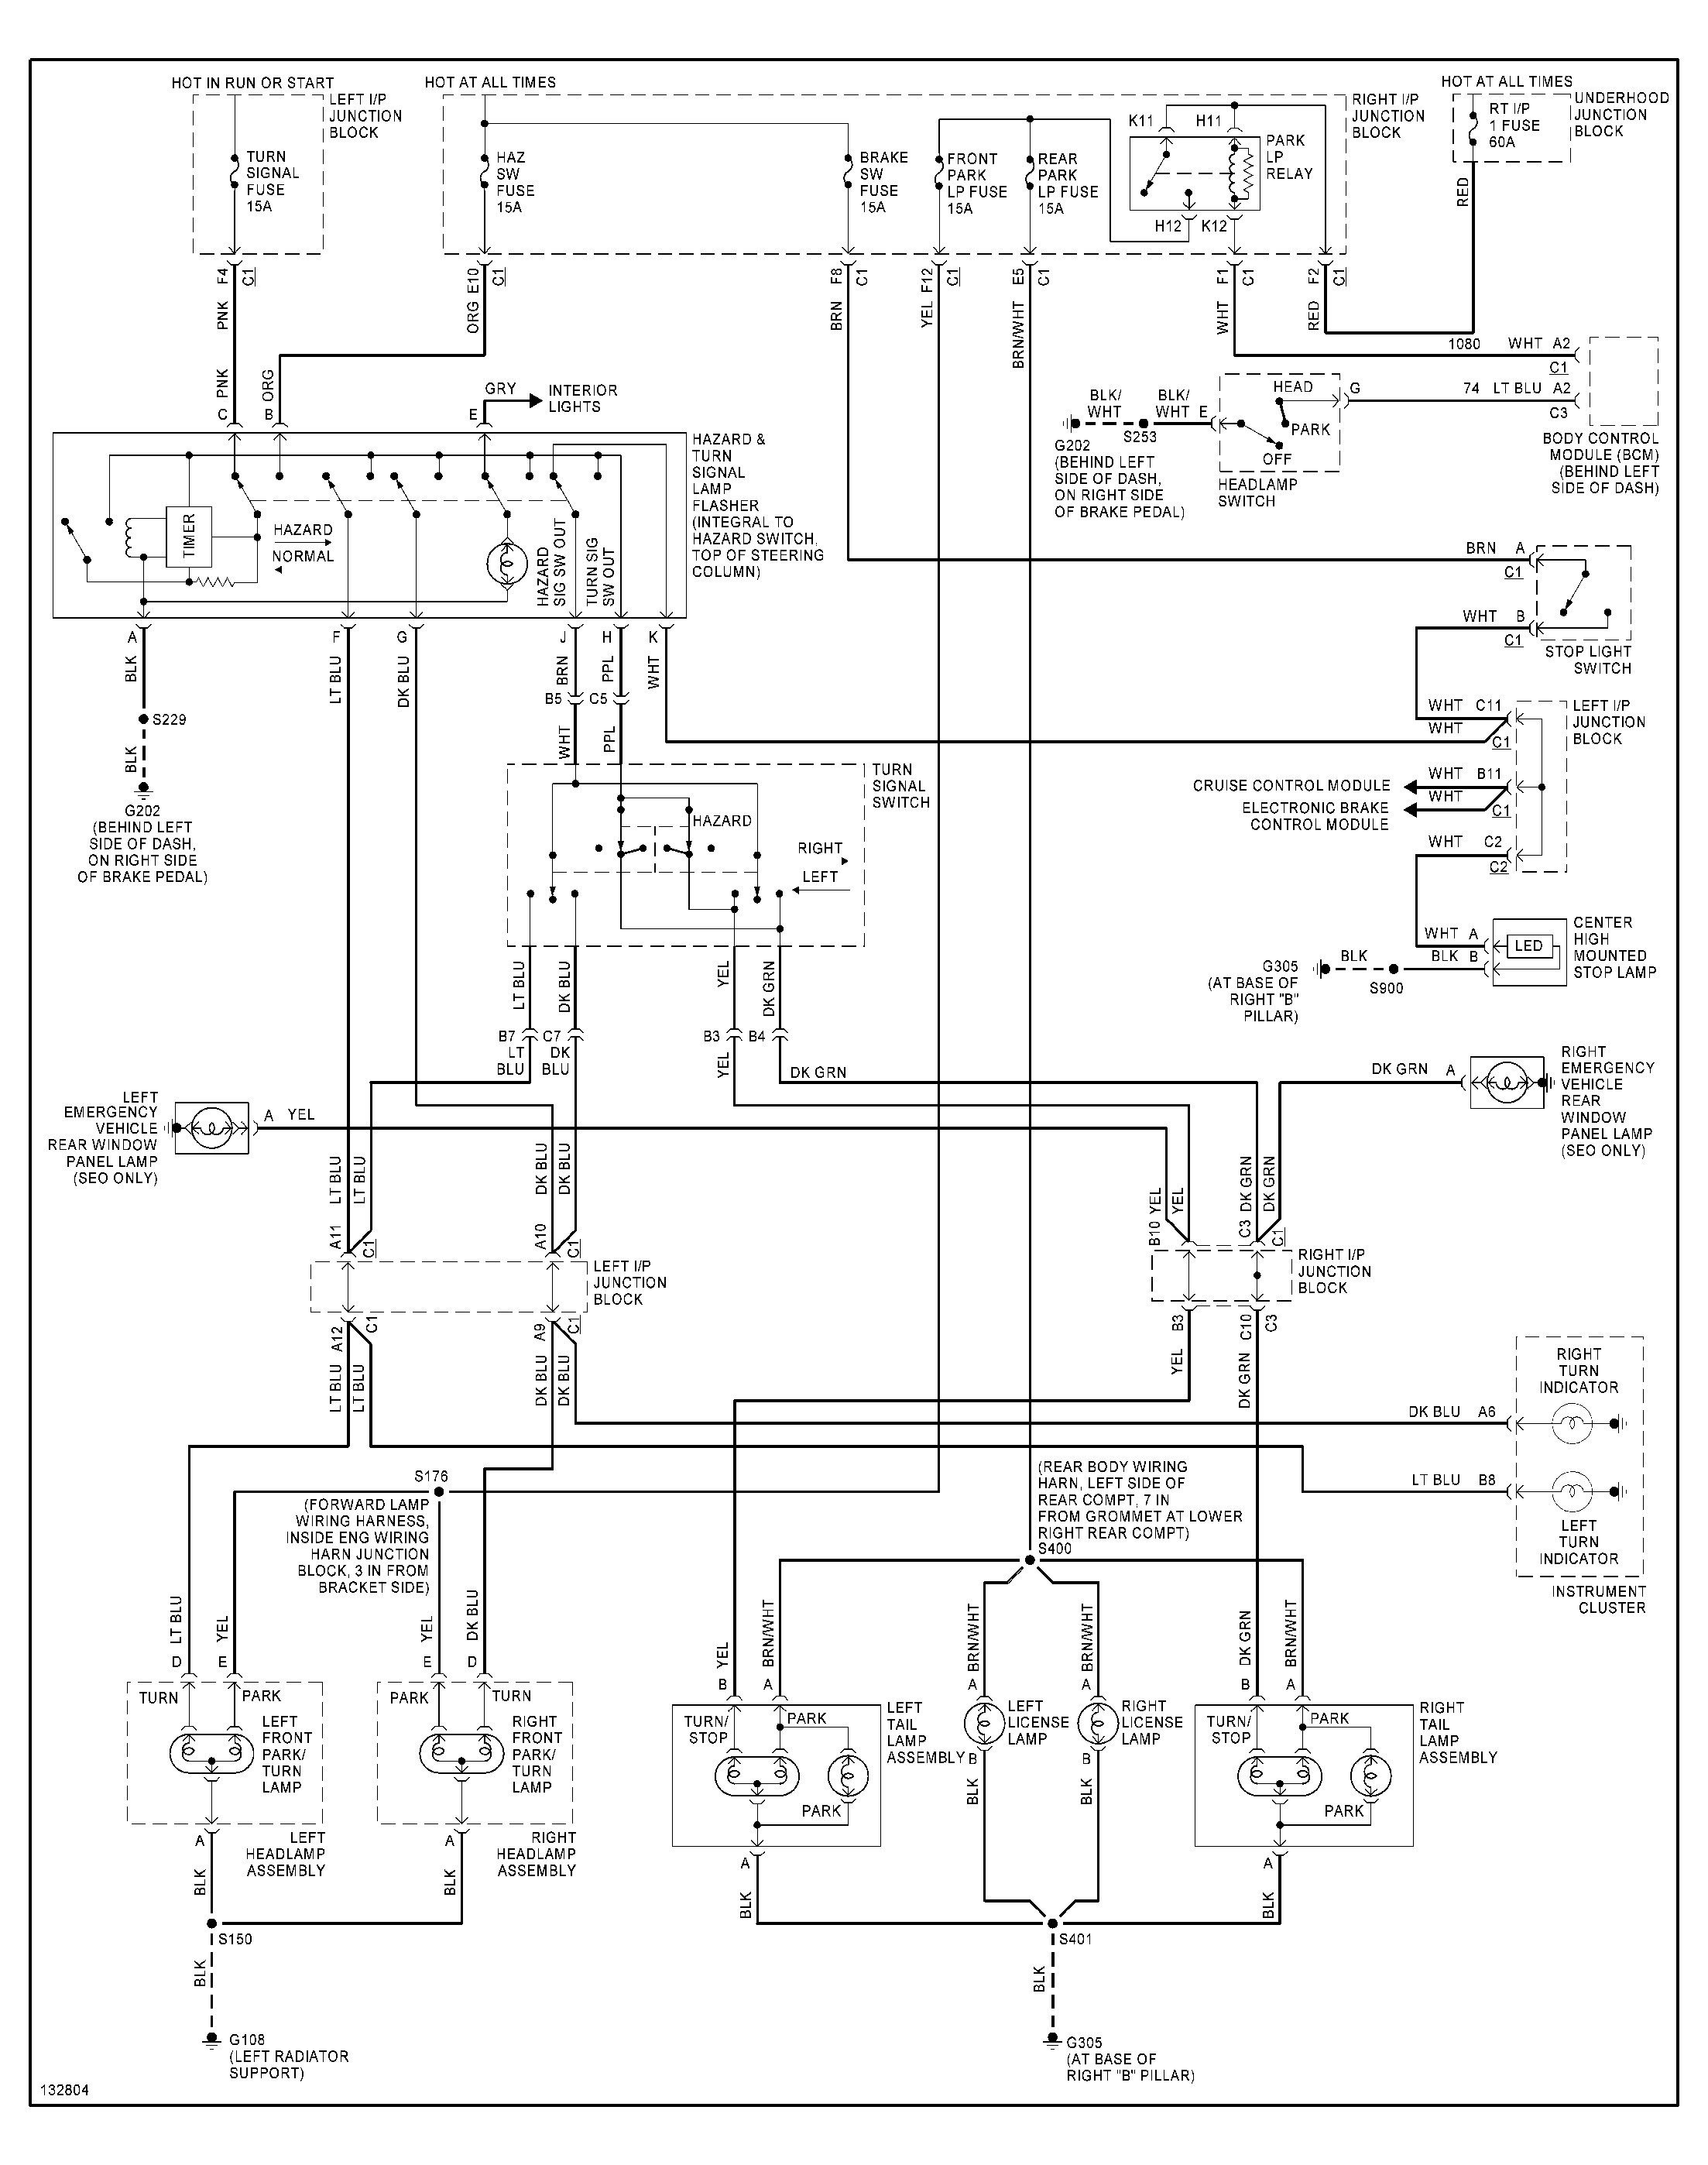 2001 Chevy Impala 3 8 Engine Diagram 2008 Chevy Impala